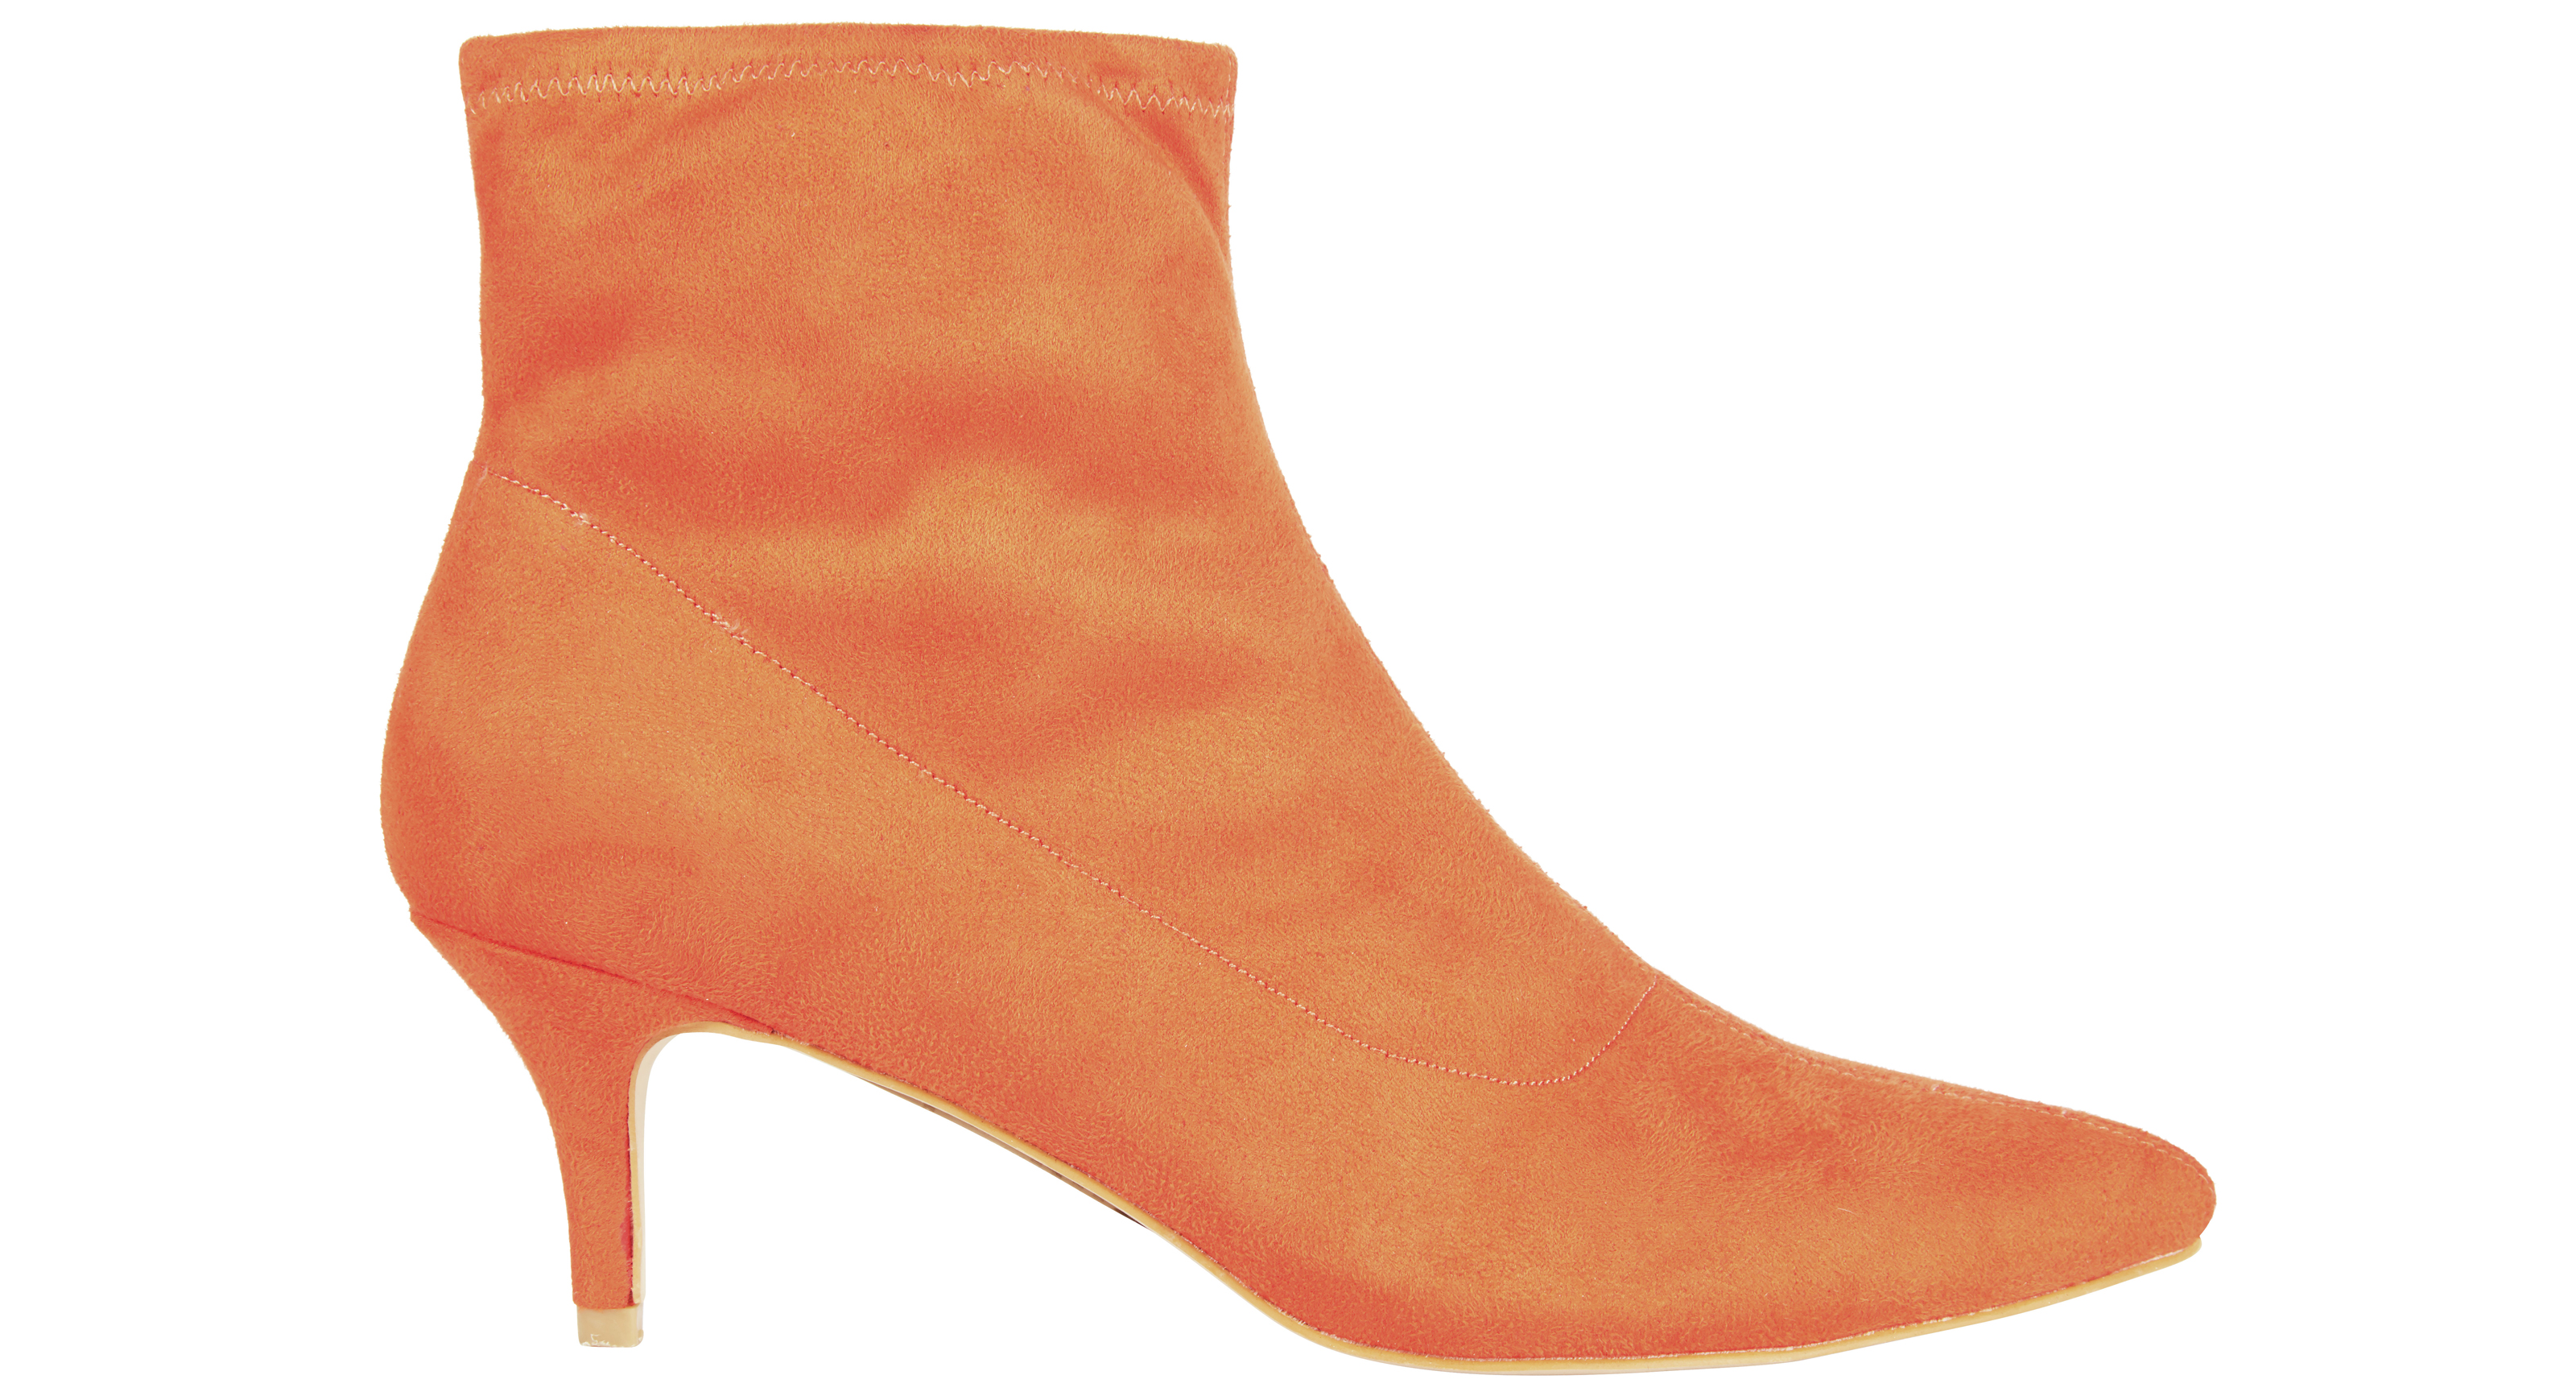 Tu at Sainsbury's Online Exclusive Orange Sock Ankle Boots